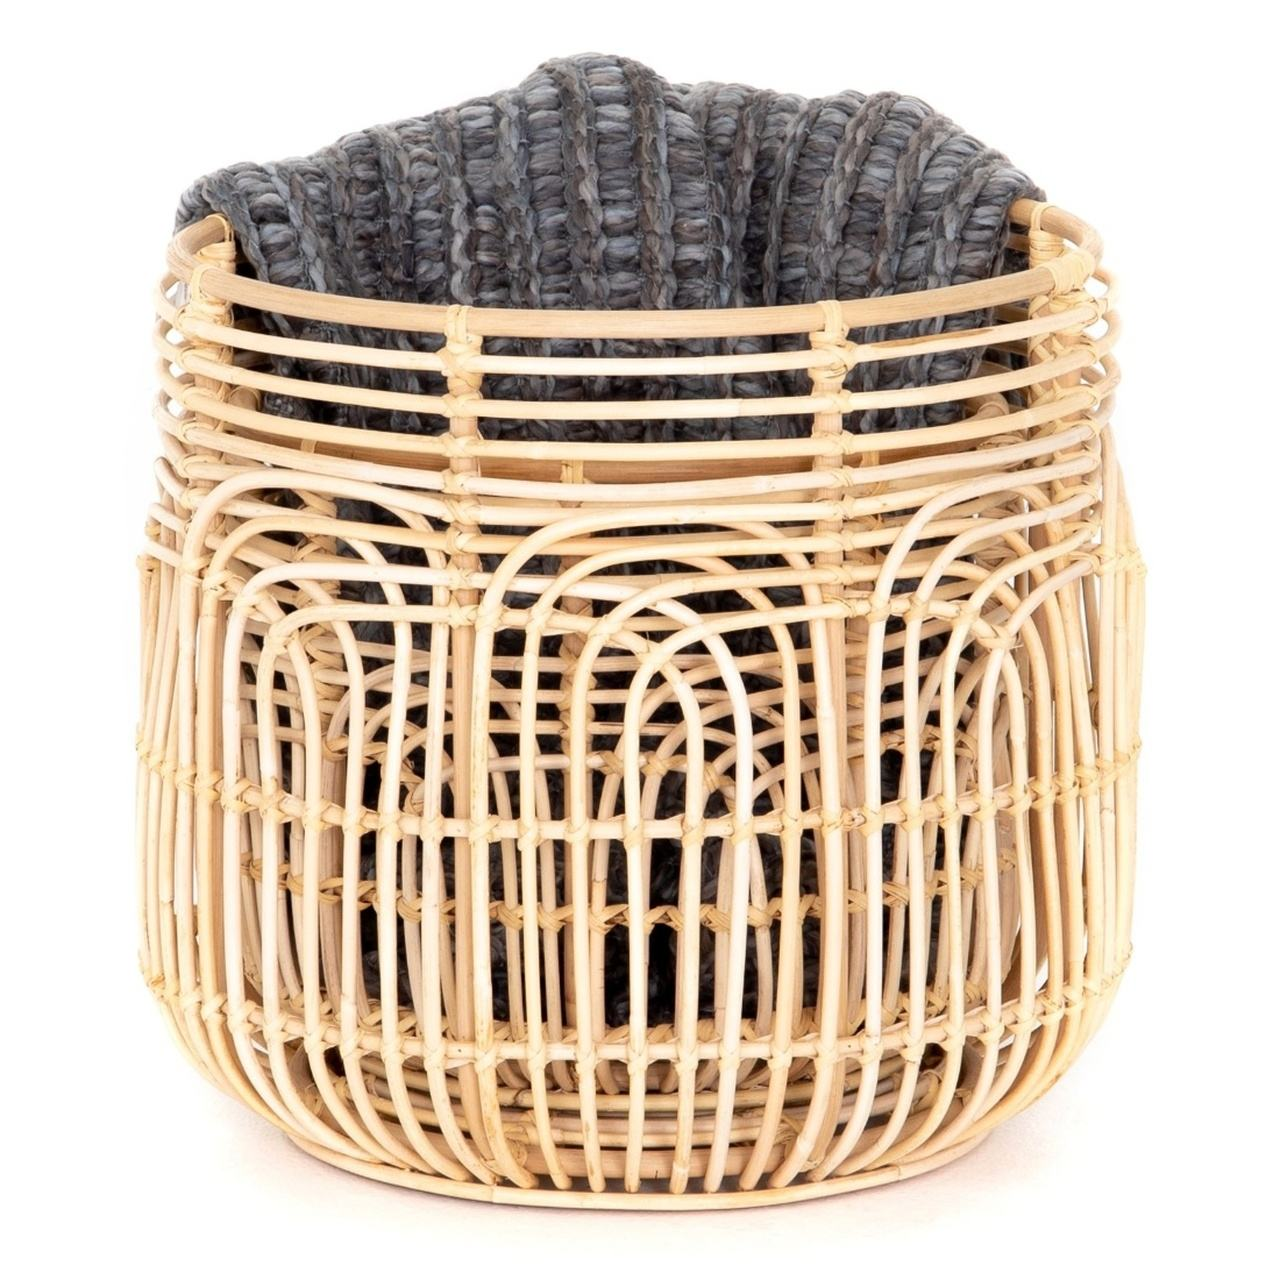 Set of 2 Round Rattan Storage Basket with Handles for Laundry Containing Wholesale from Glovimex